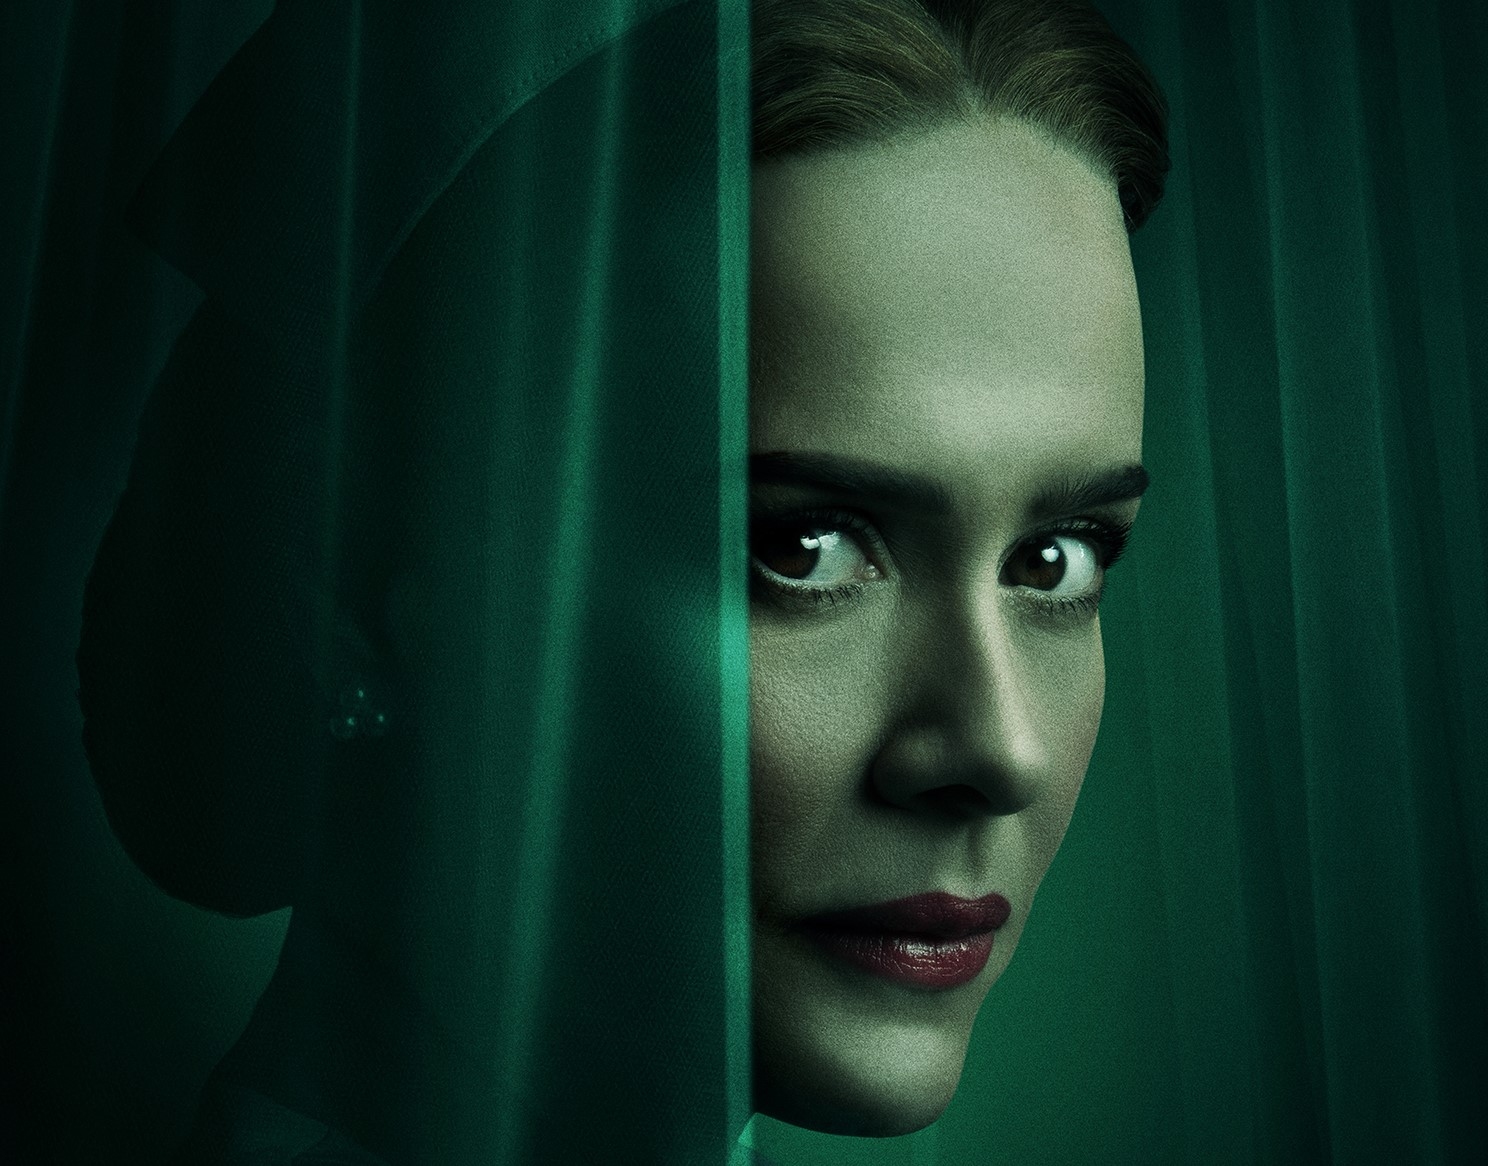 'Ratched' Trailer: Sarah Paulson Brings Iconic (And Terrifying) Nurse To Life